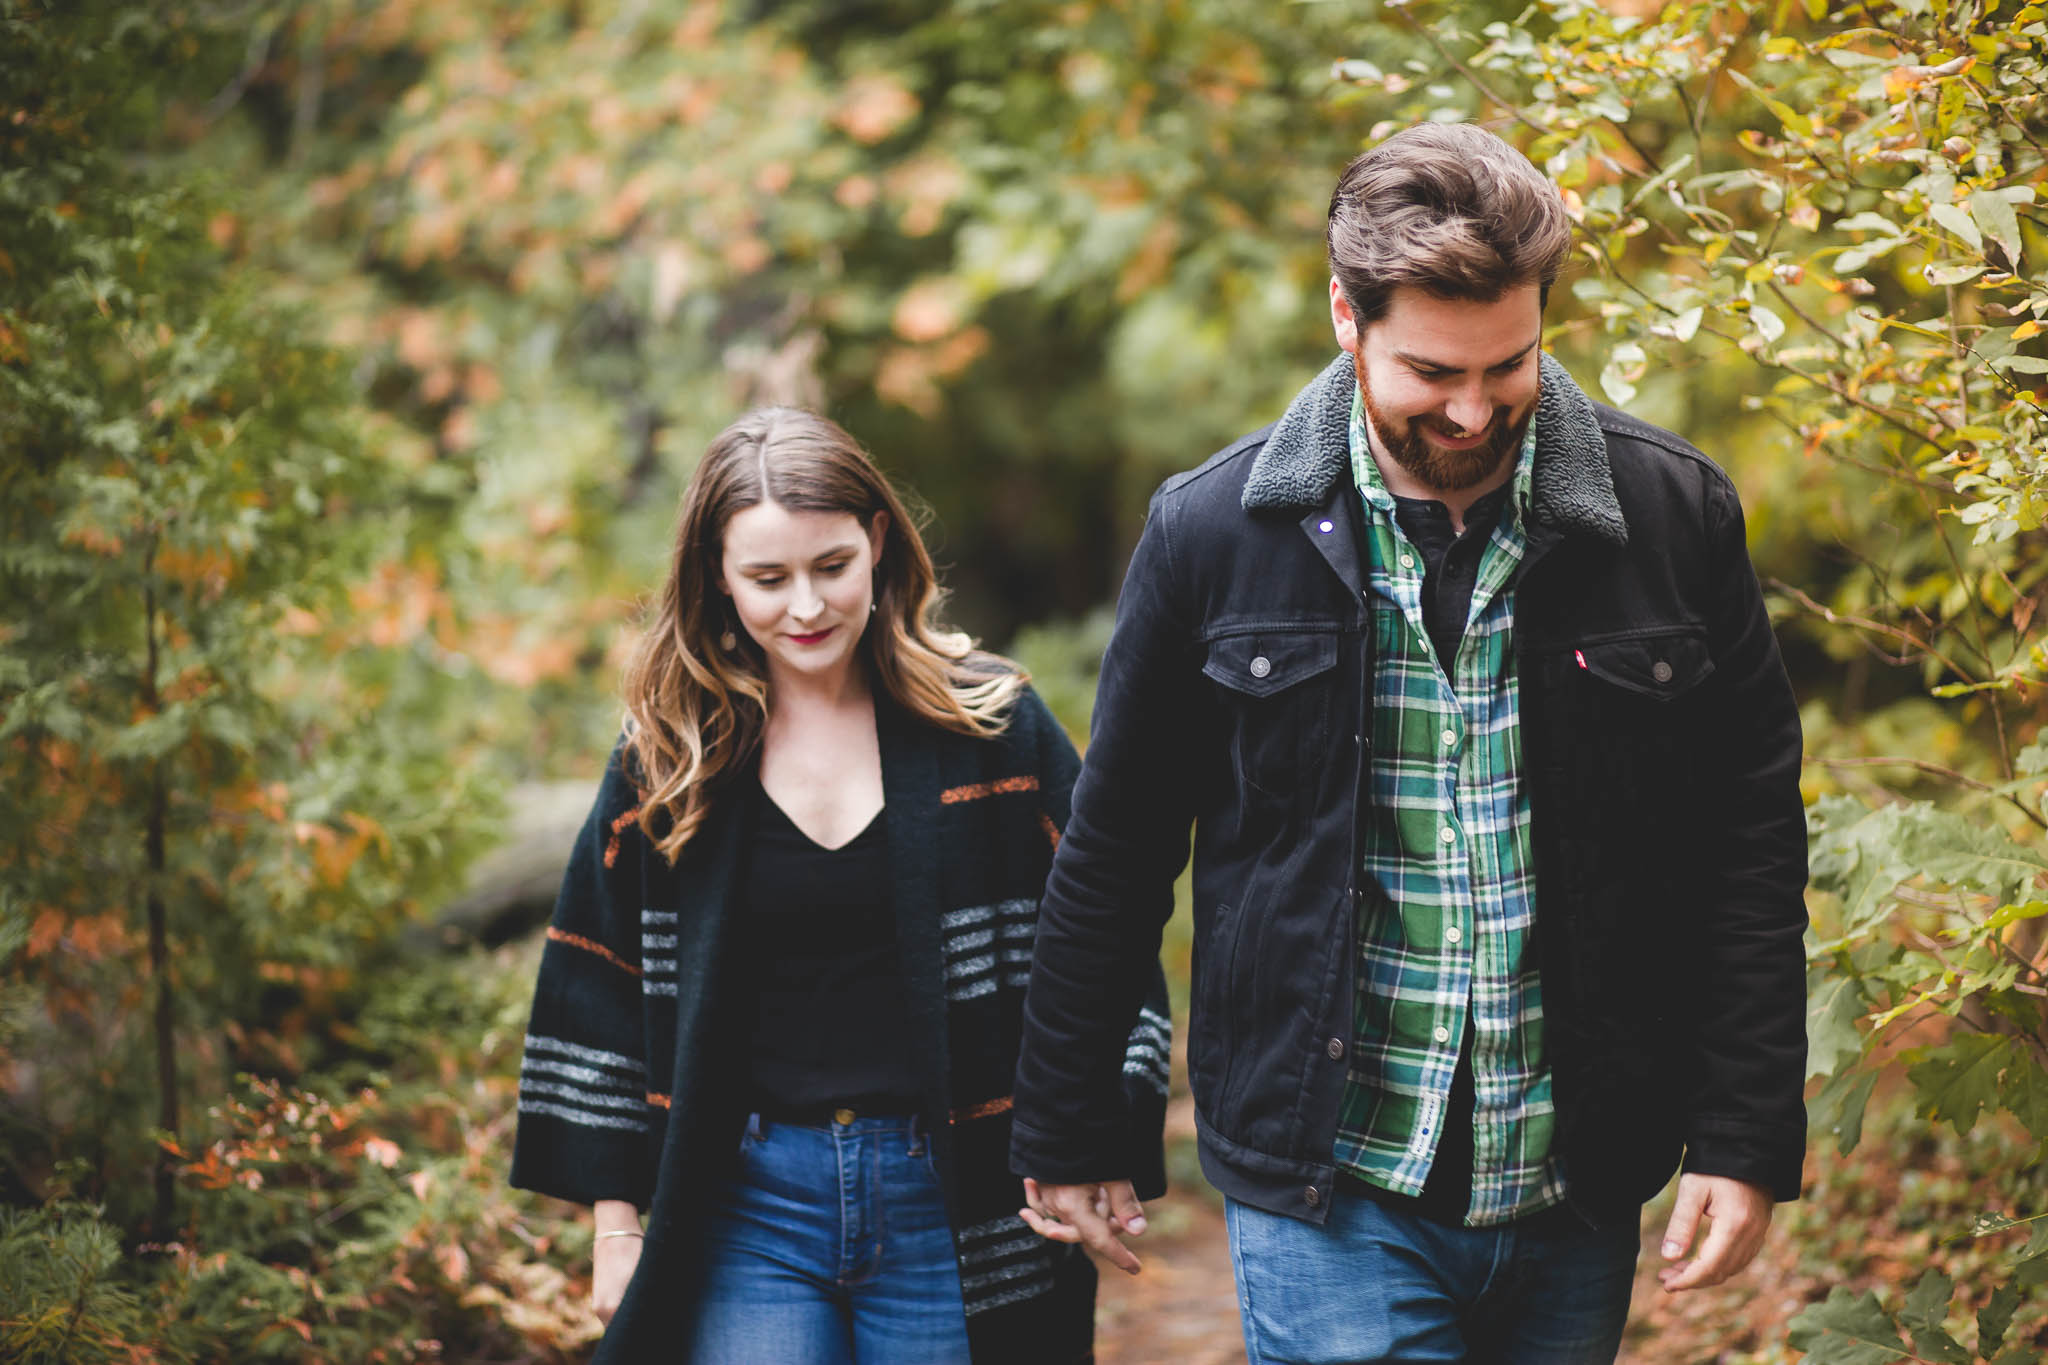 Amy D Photography- Fall Engagement Session- Fall Wedding- Engagement Session Poses- Engagement Poses- Wedding Photography Barrie-Fall Engagement  (35 of 90).jpg